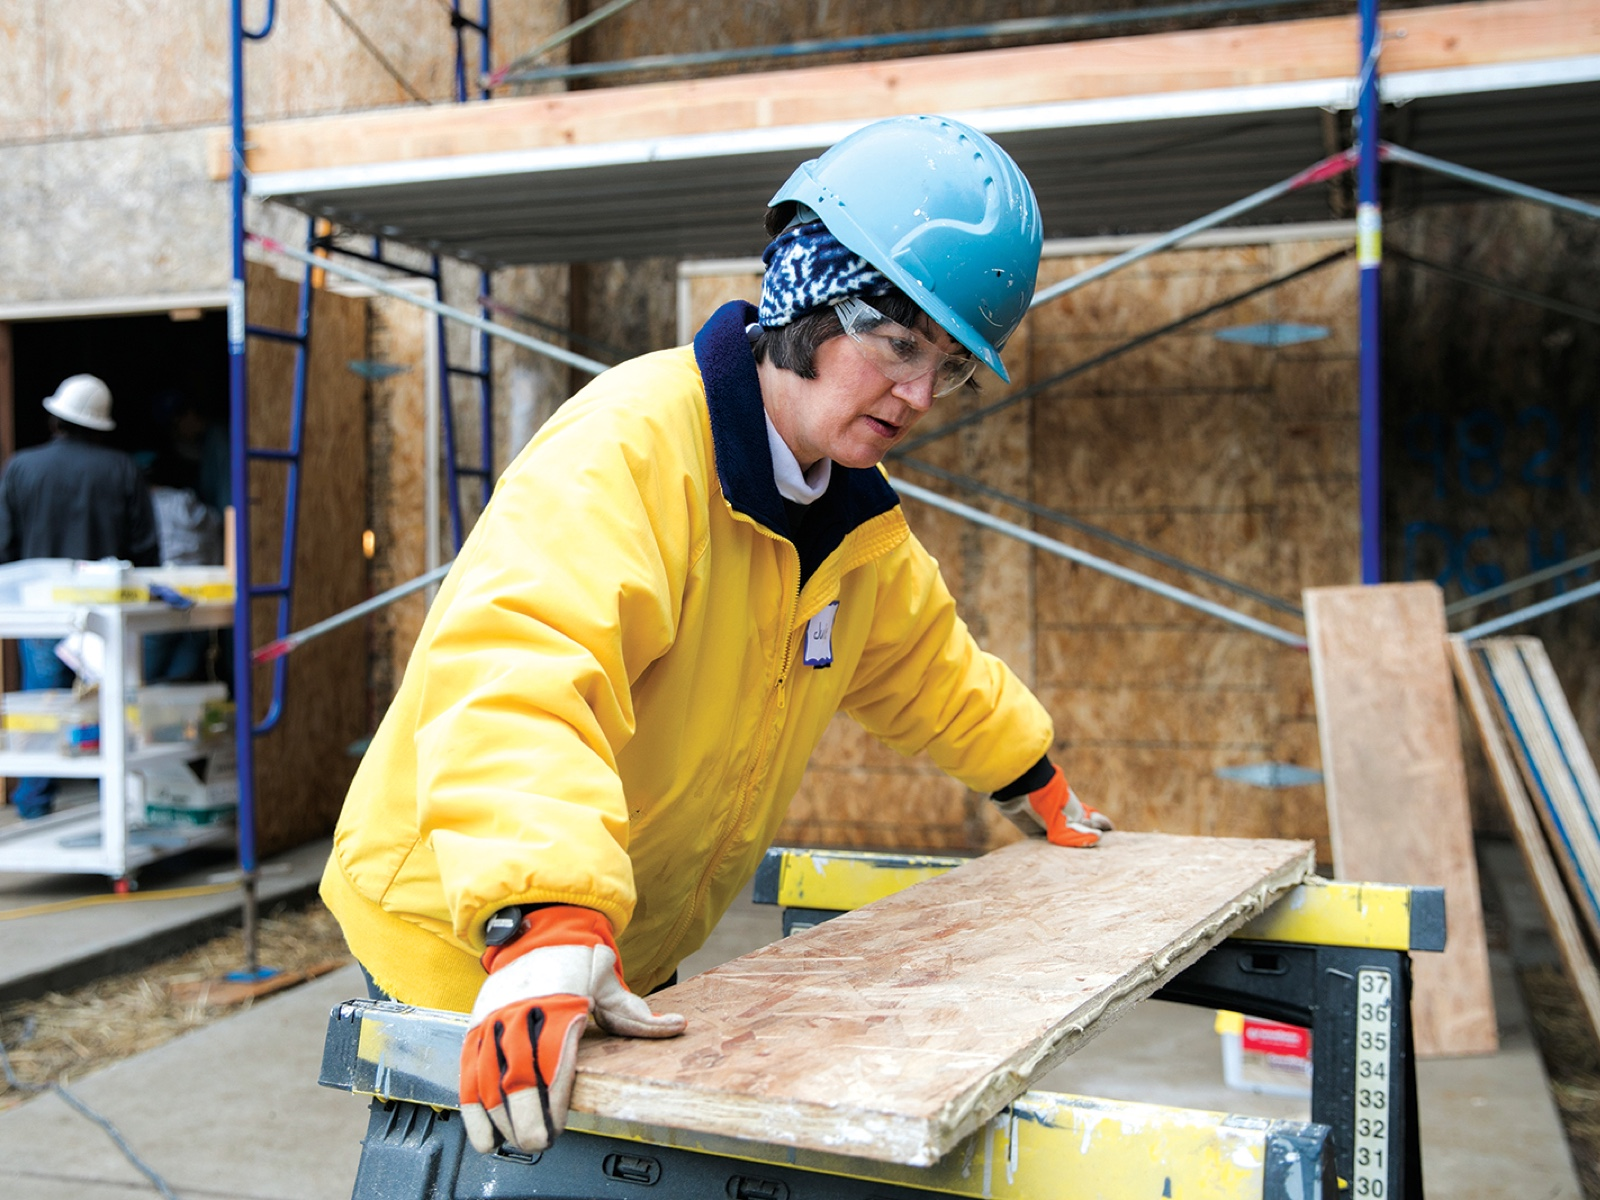 Julie Christiansen placing lumber on a sawhorse at a construction site